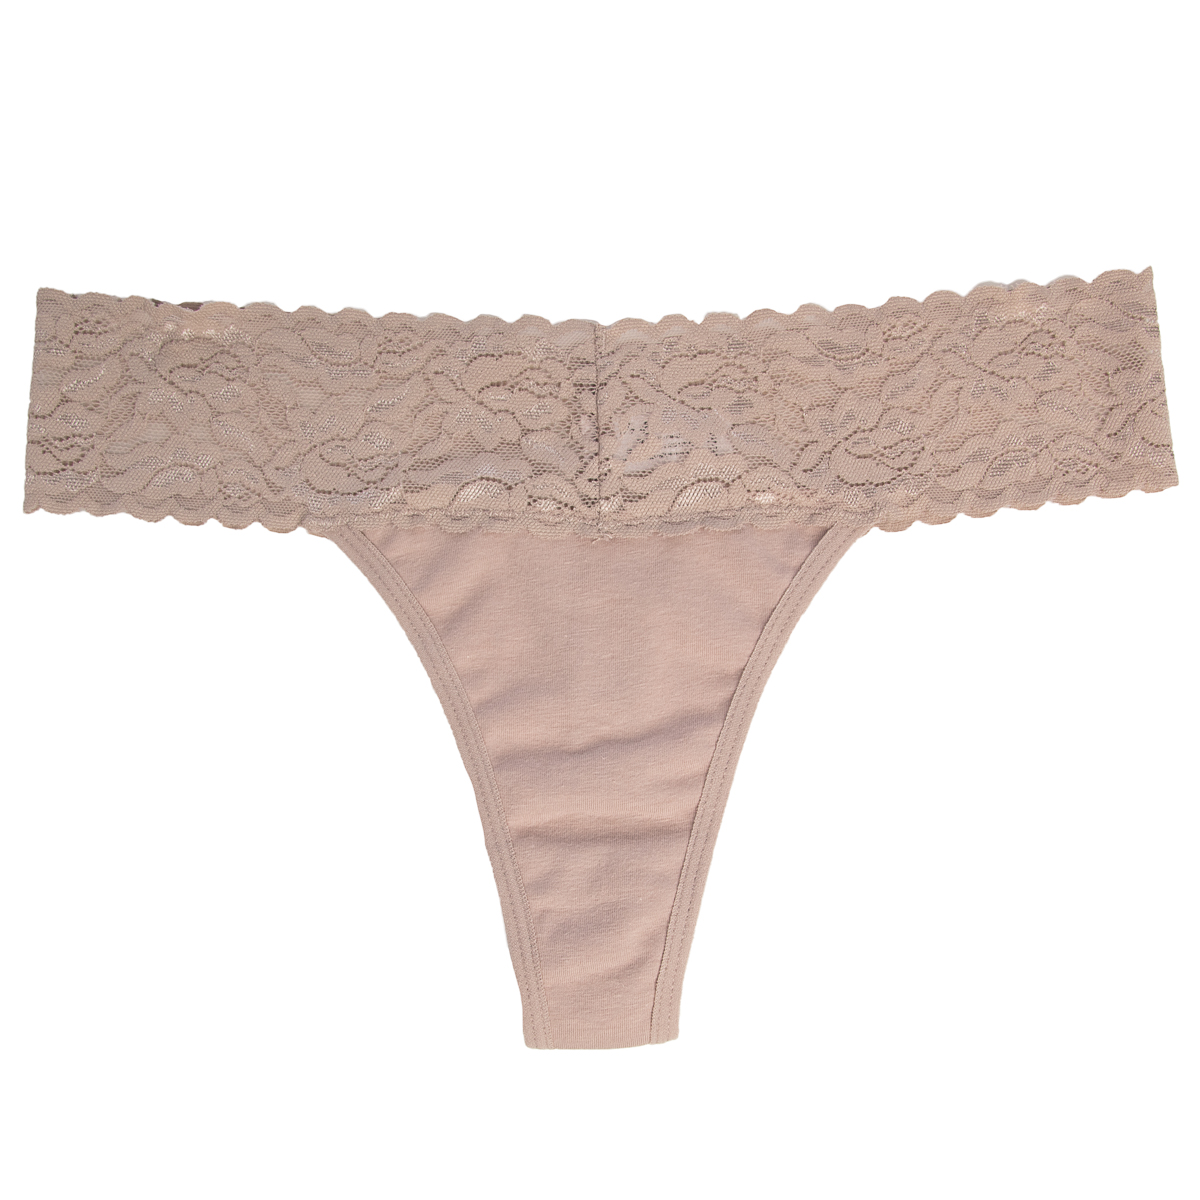 6-Pack-Cotton-Lace-Thong-Underwear-For-Women-Soft-Sexy-Lingerie-Panties-Thongs thumbnail 23